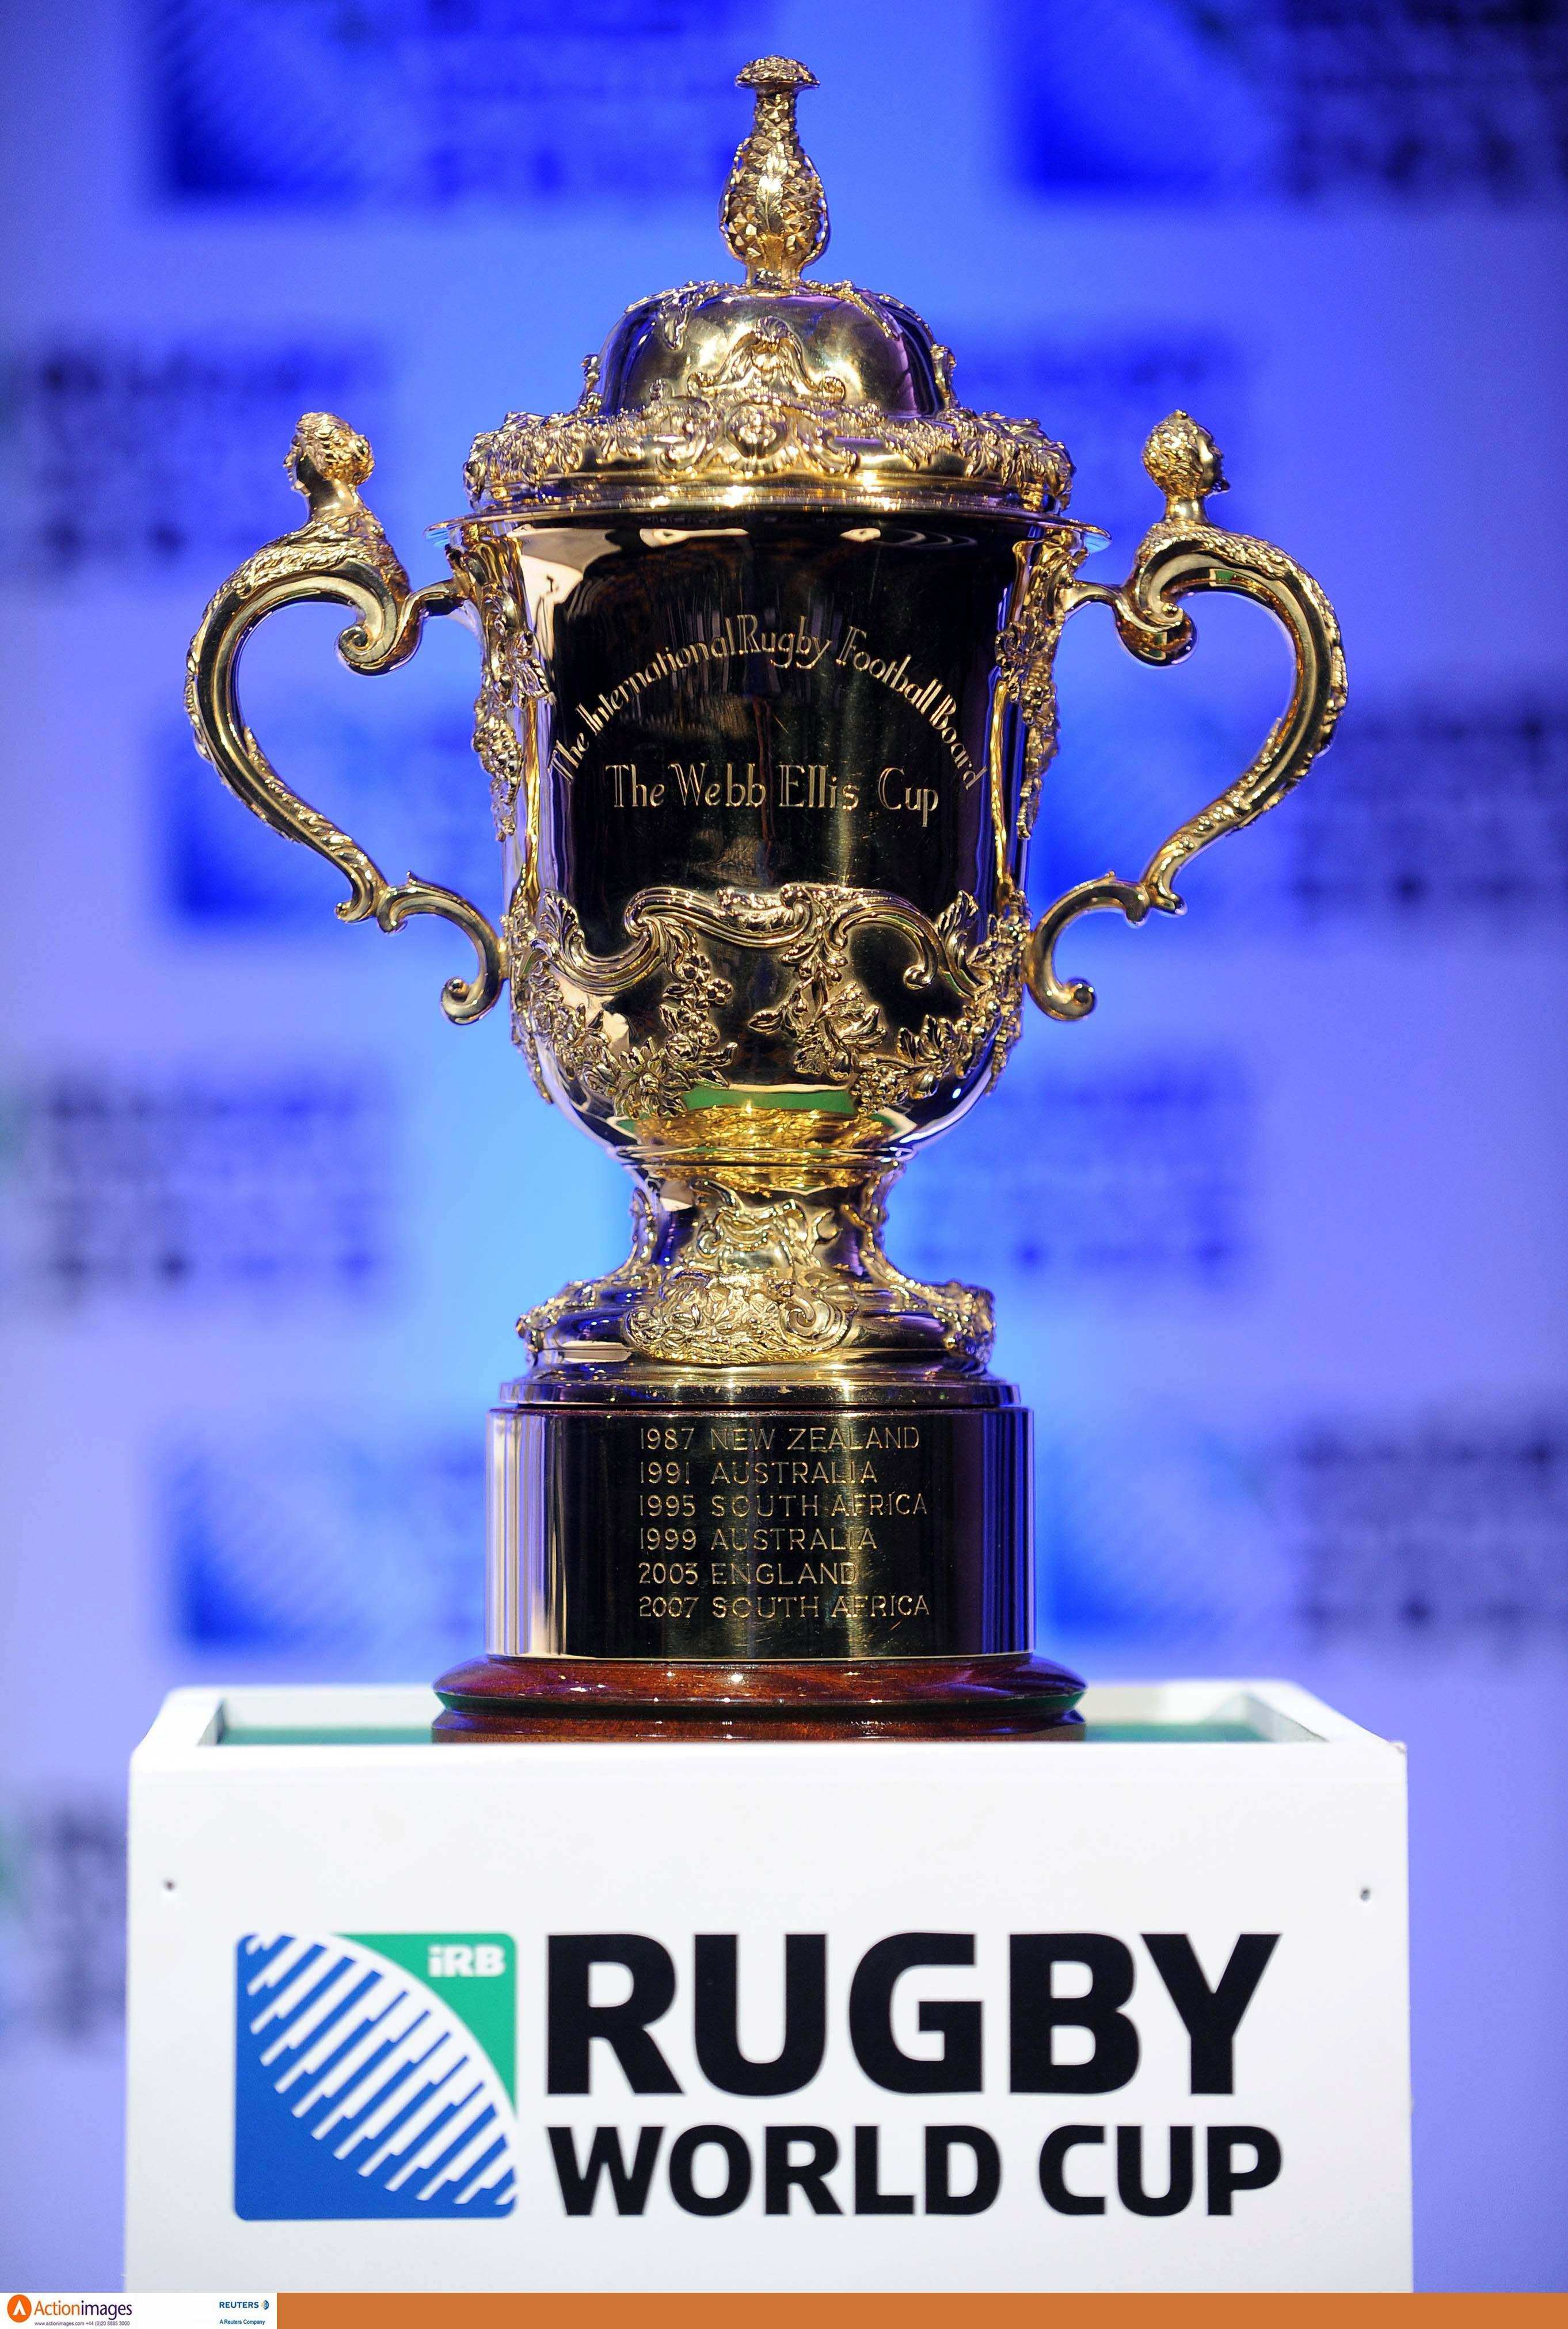 Tickets for the 2019 Rugby World Cup are set to go on sale